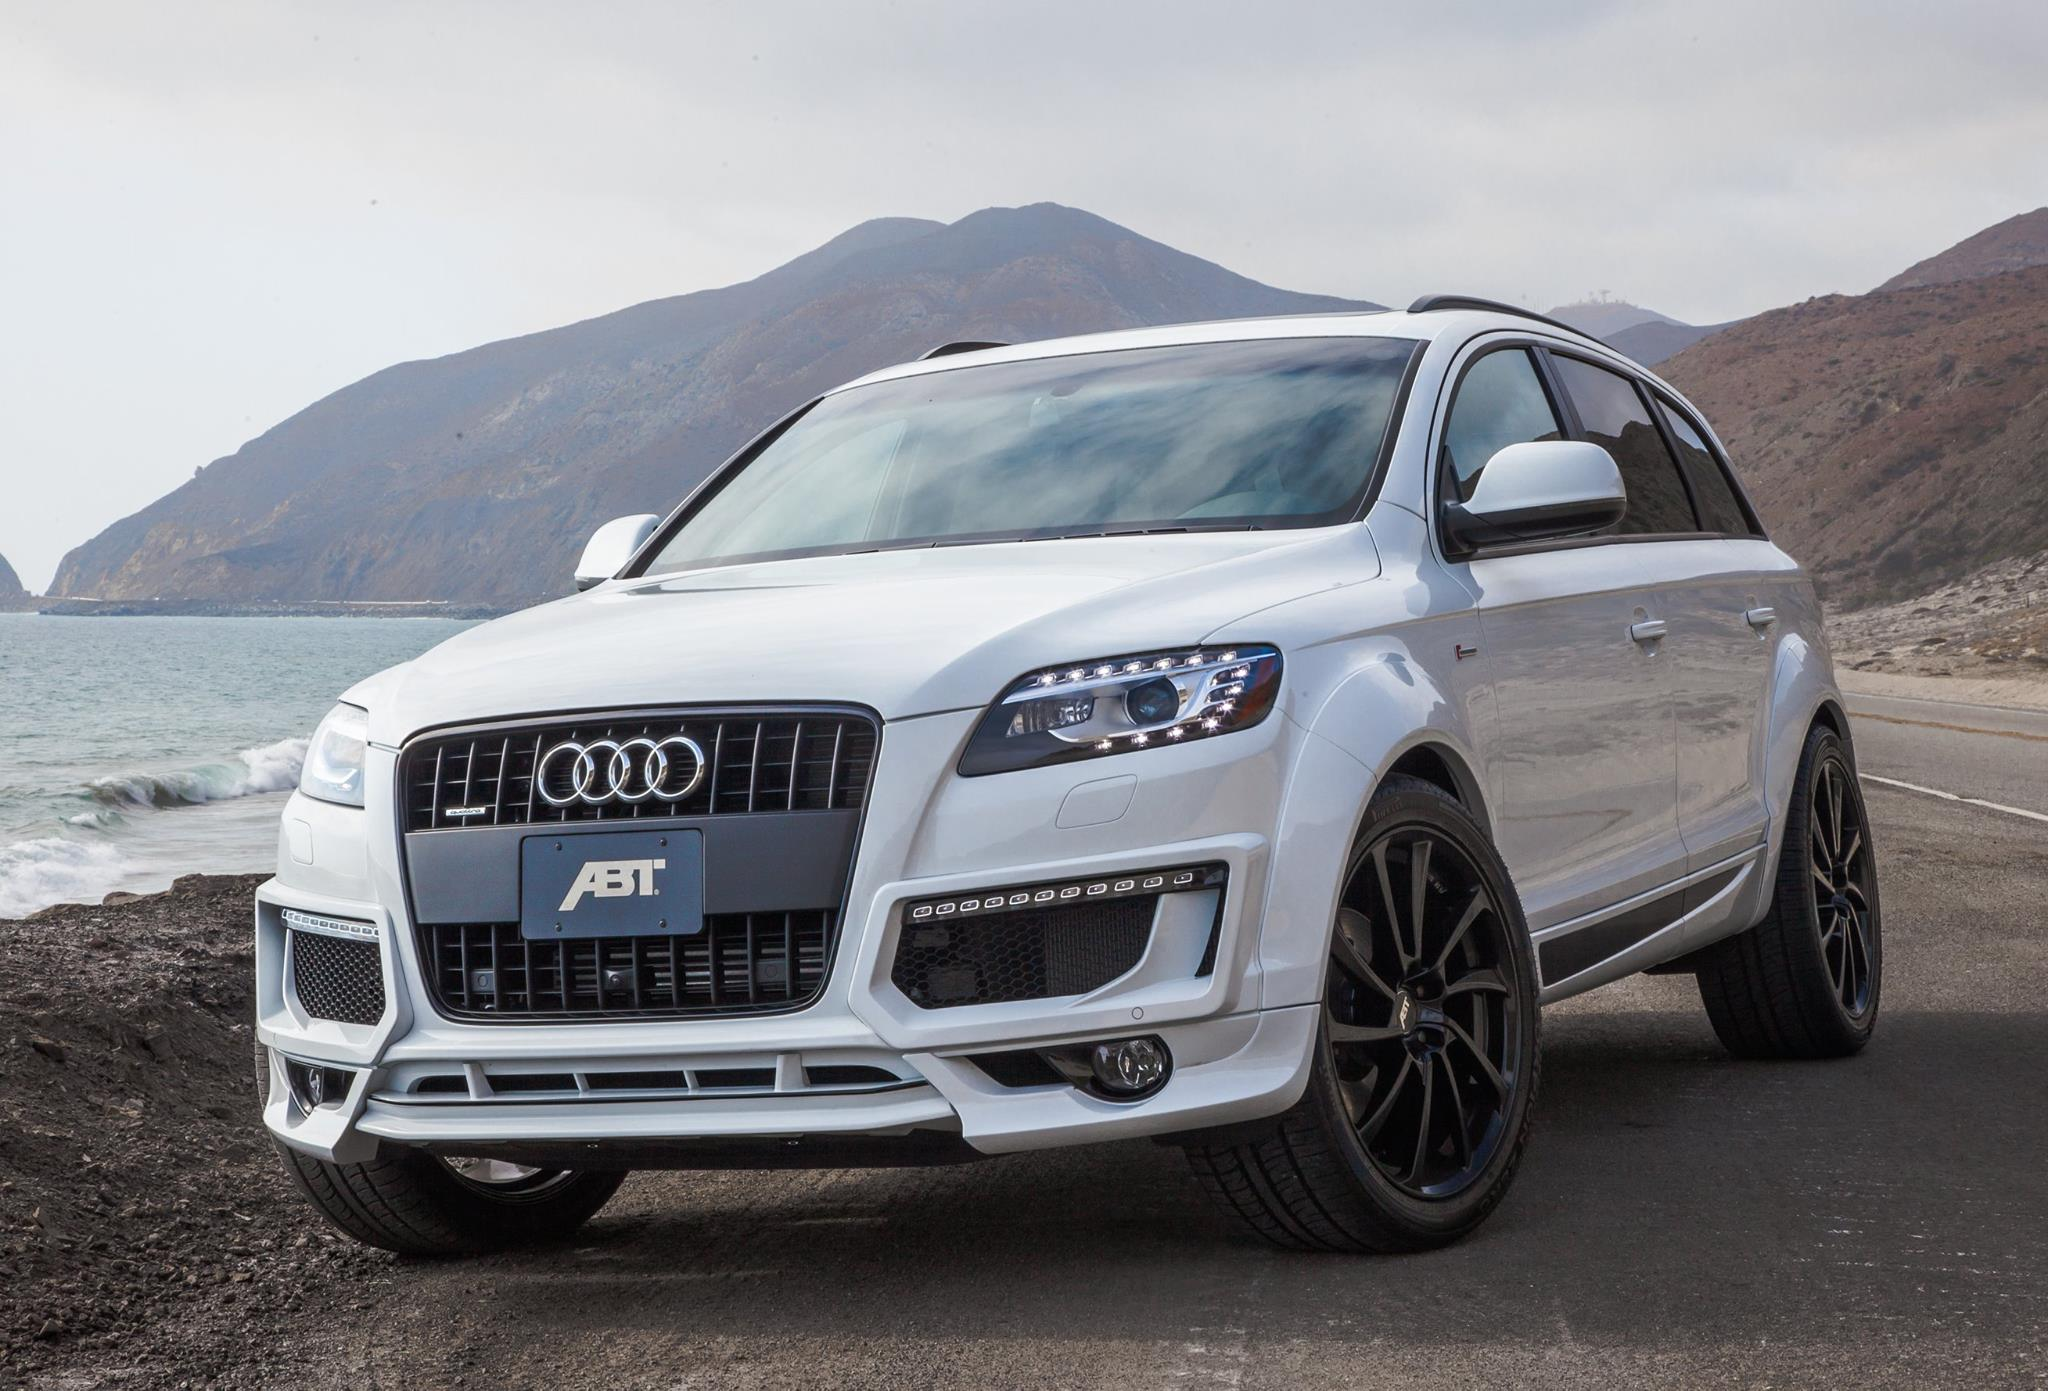 ABT Takes One Last Look at the Audi Q7 Before the Next-Gen Arrives on 2012 audi q5 white, 2007 audi q7 white, 2008 audi s5 white, 2008 audi tt white, 2001 audi s4 white, 2008 audi rs5 white, 2008 audi a8 white, 2008 audi a4 quattro white, 2008 audi q7 quattro, 2010 audi tt white, 2008 audi q7 interior, 2008 audi q7 premium, 2008 audi s4 white,